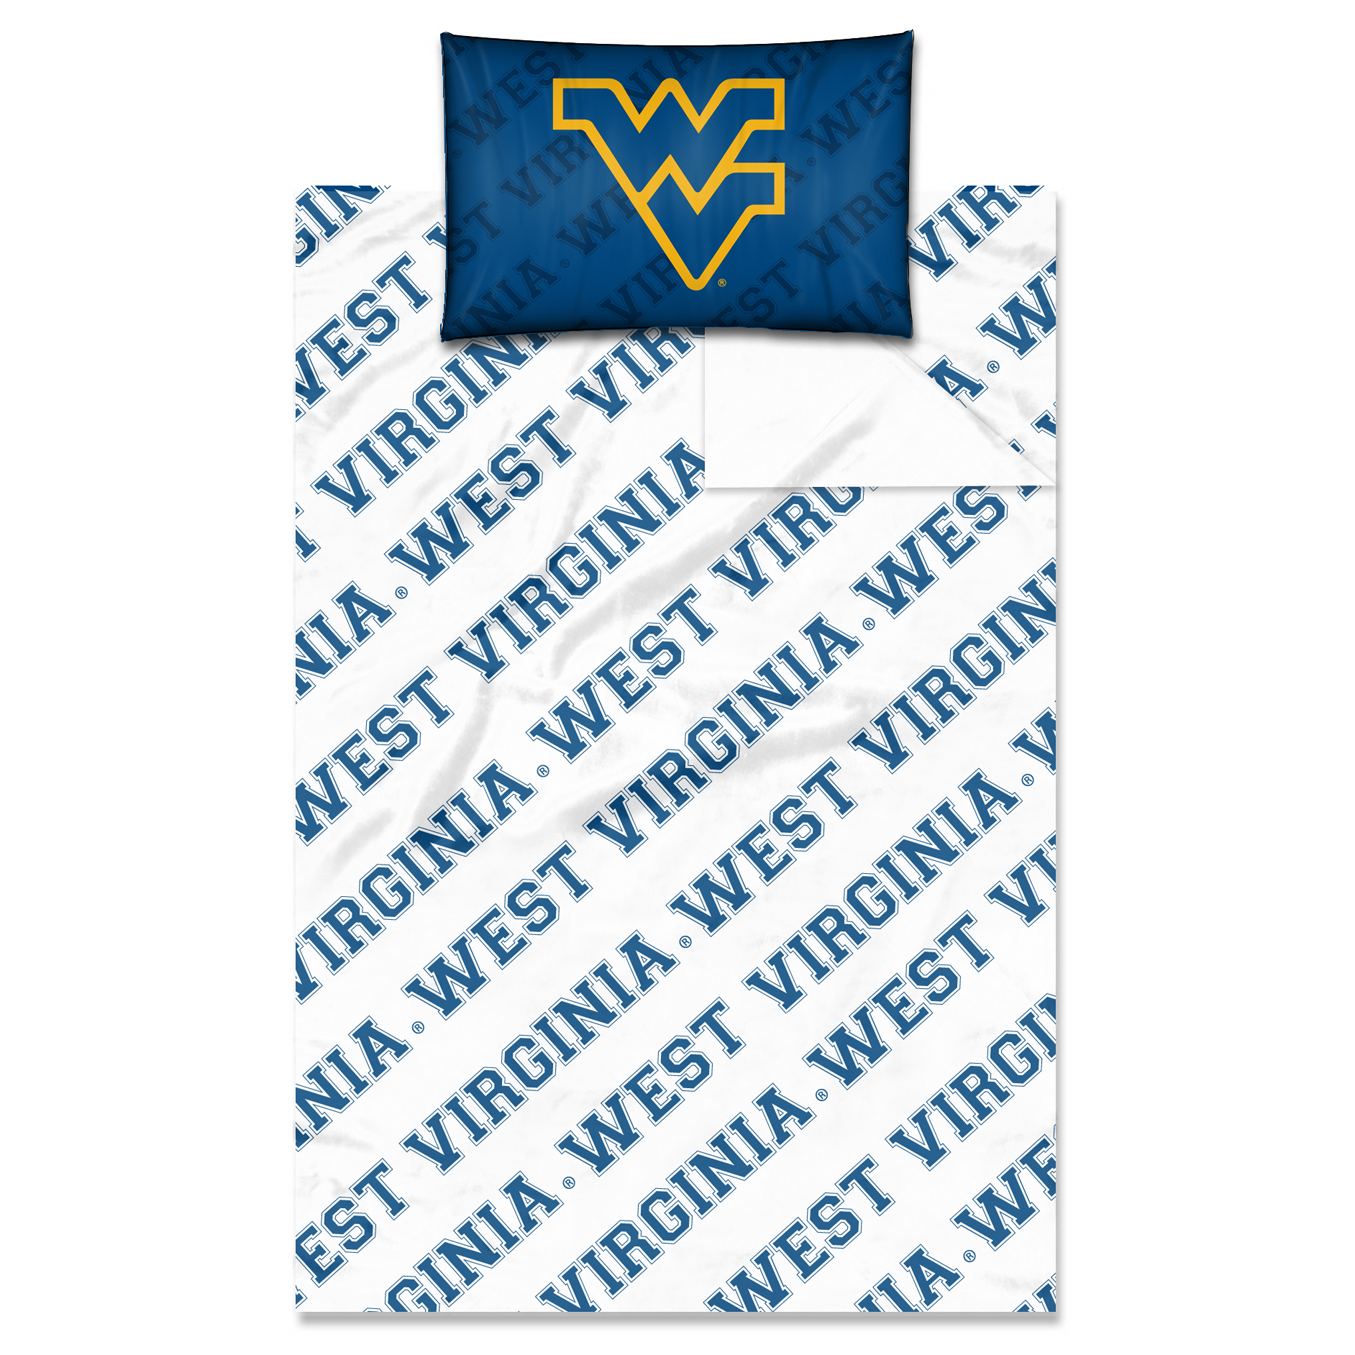 "West Virginia OFFICIAL Collegiate, Bedding Twin Sheet Set (1 Flat  66""x 96"", 1 Fitted  39""x 75"" + 12"" pocket, and 1 Pillowcase"